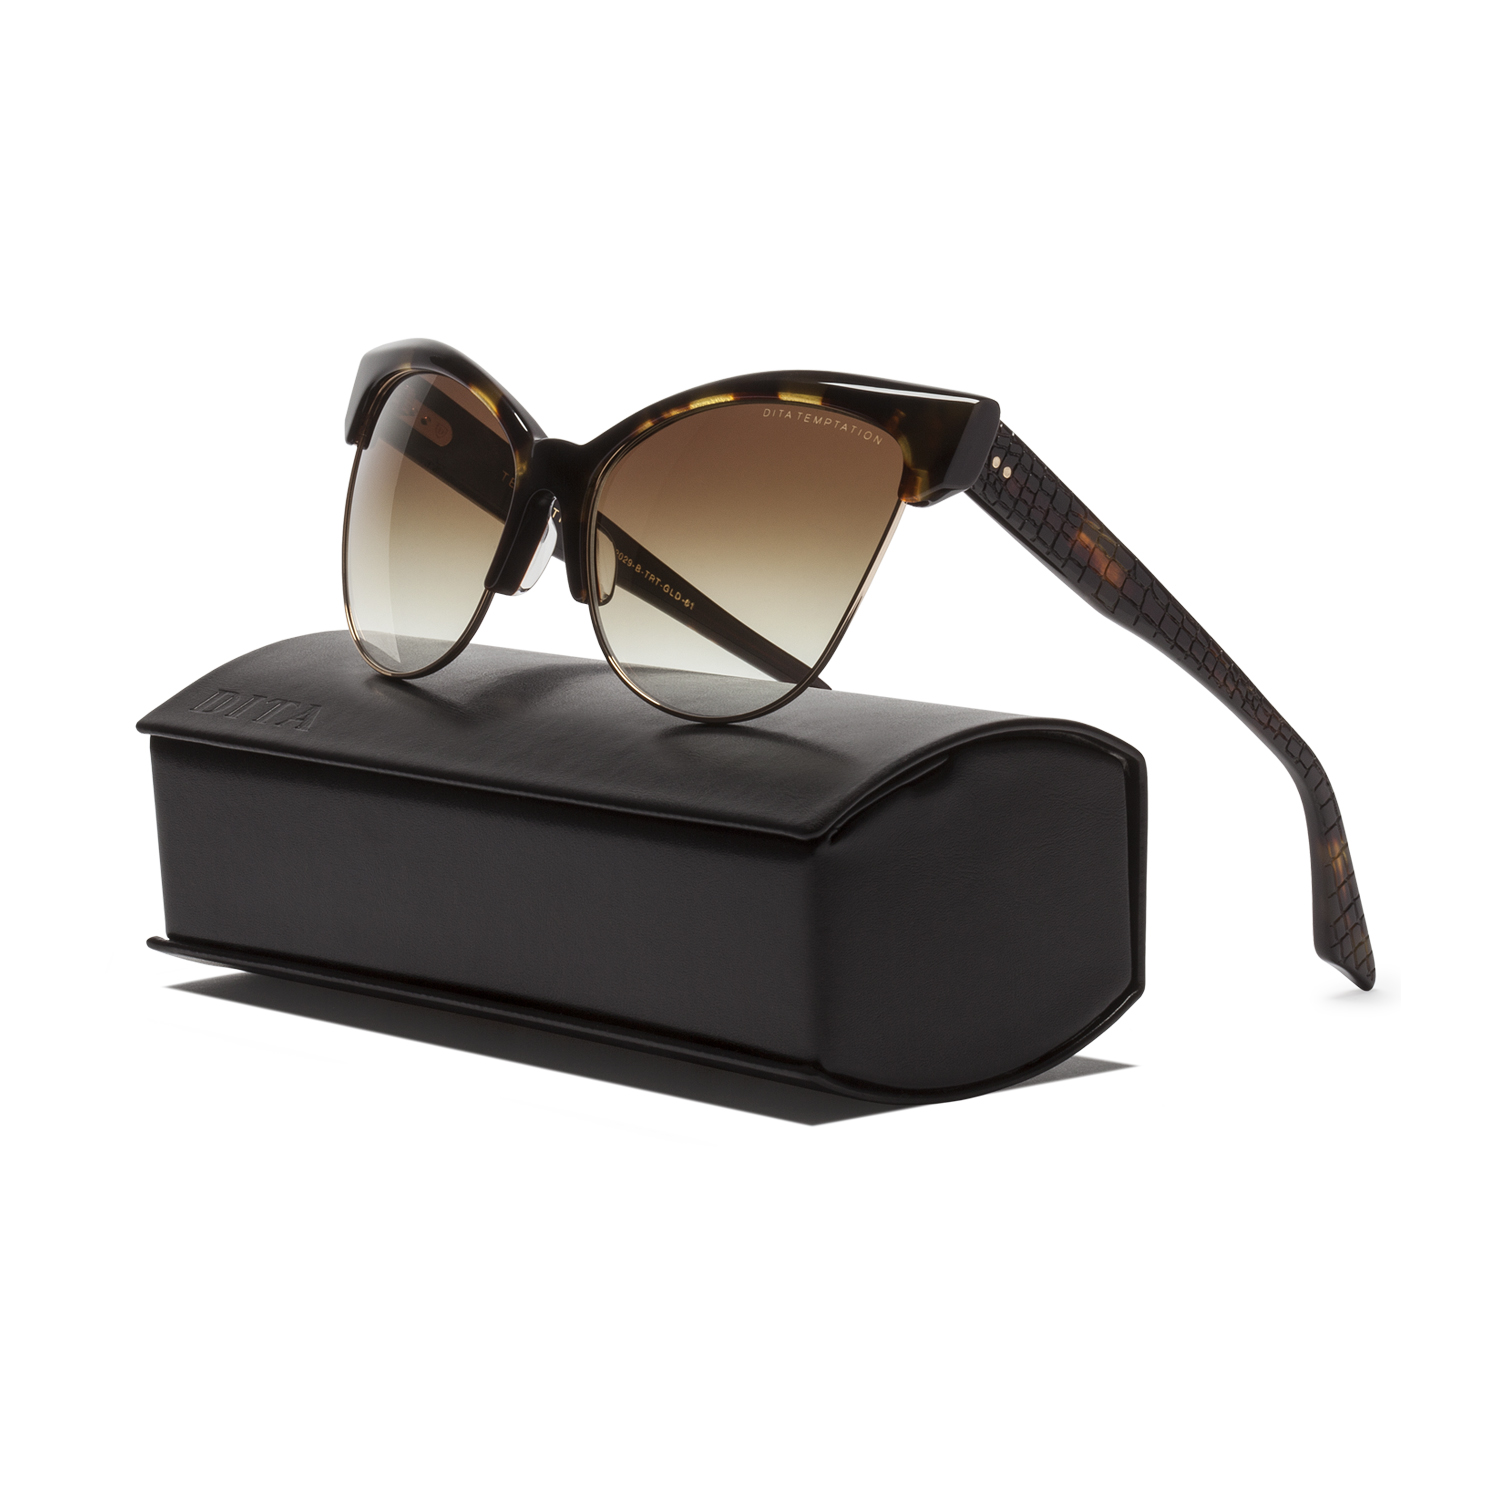 02fcb83e1de Details about NEW Dita Temptation Sunglasses 22029B Tortoise Burnt Brown  12K Gold   Brown Gold